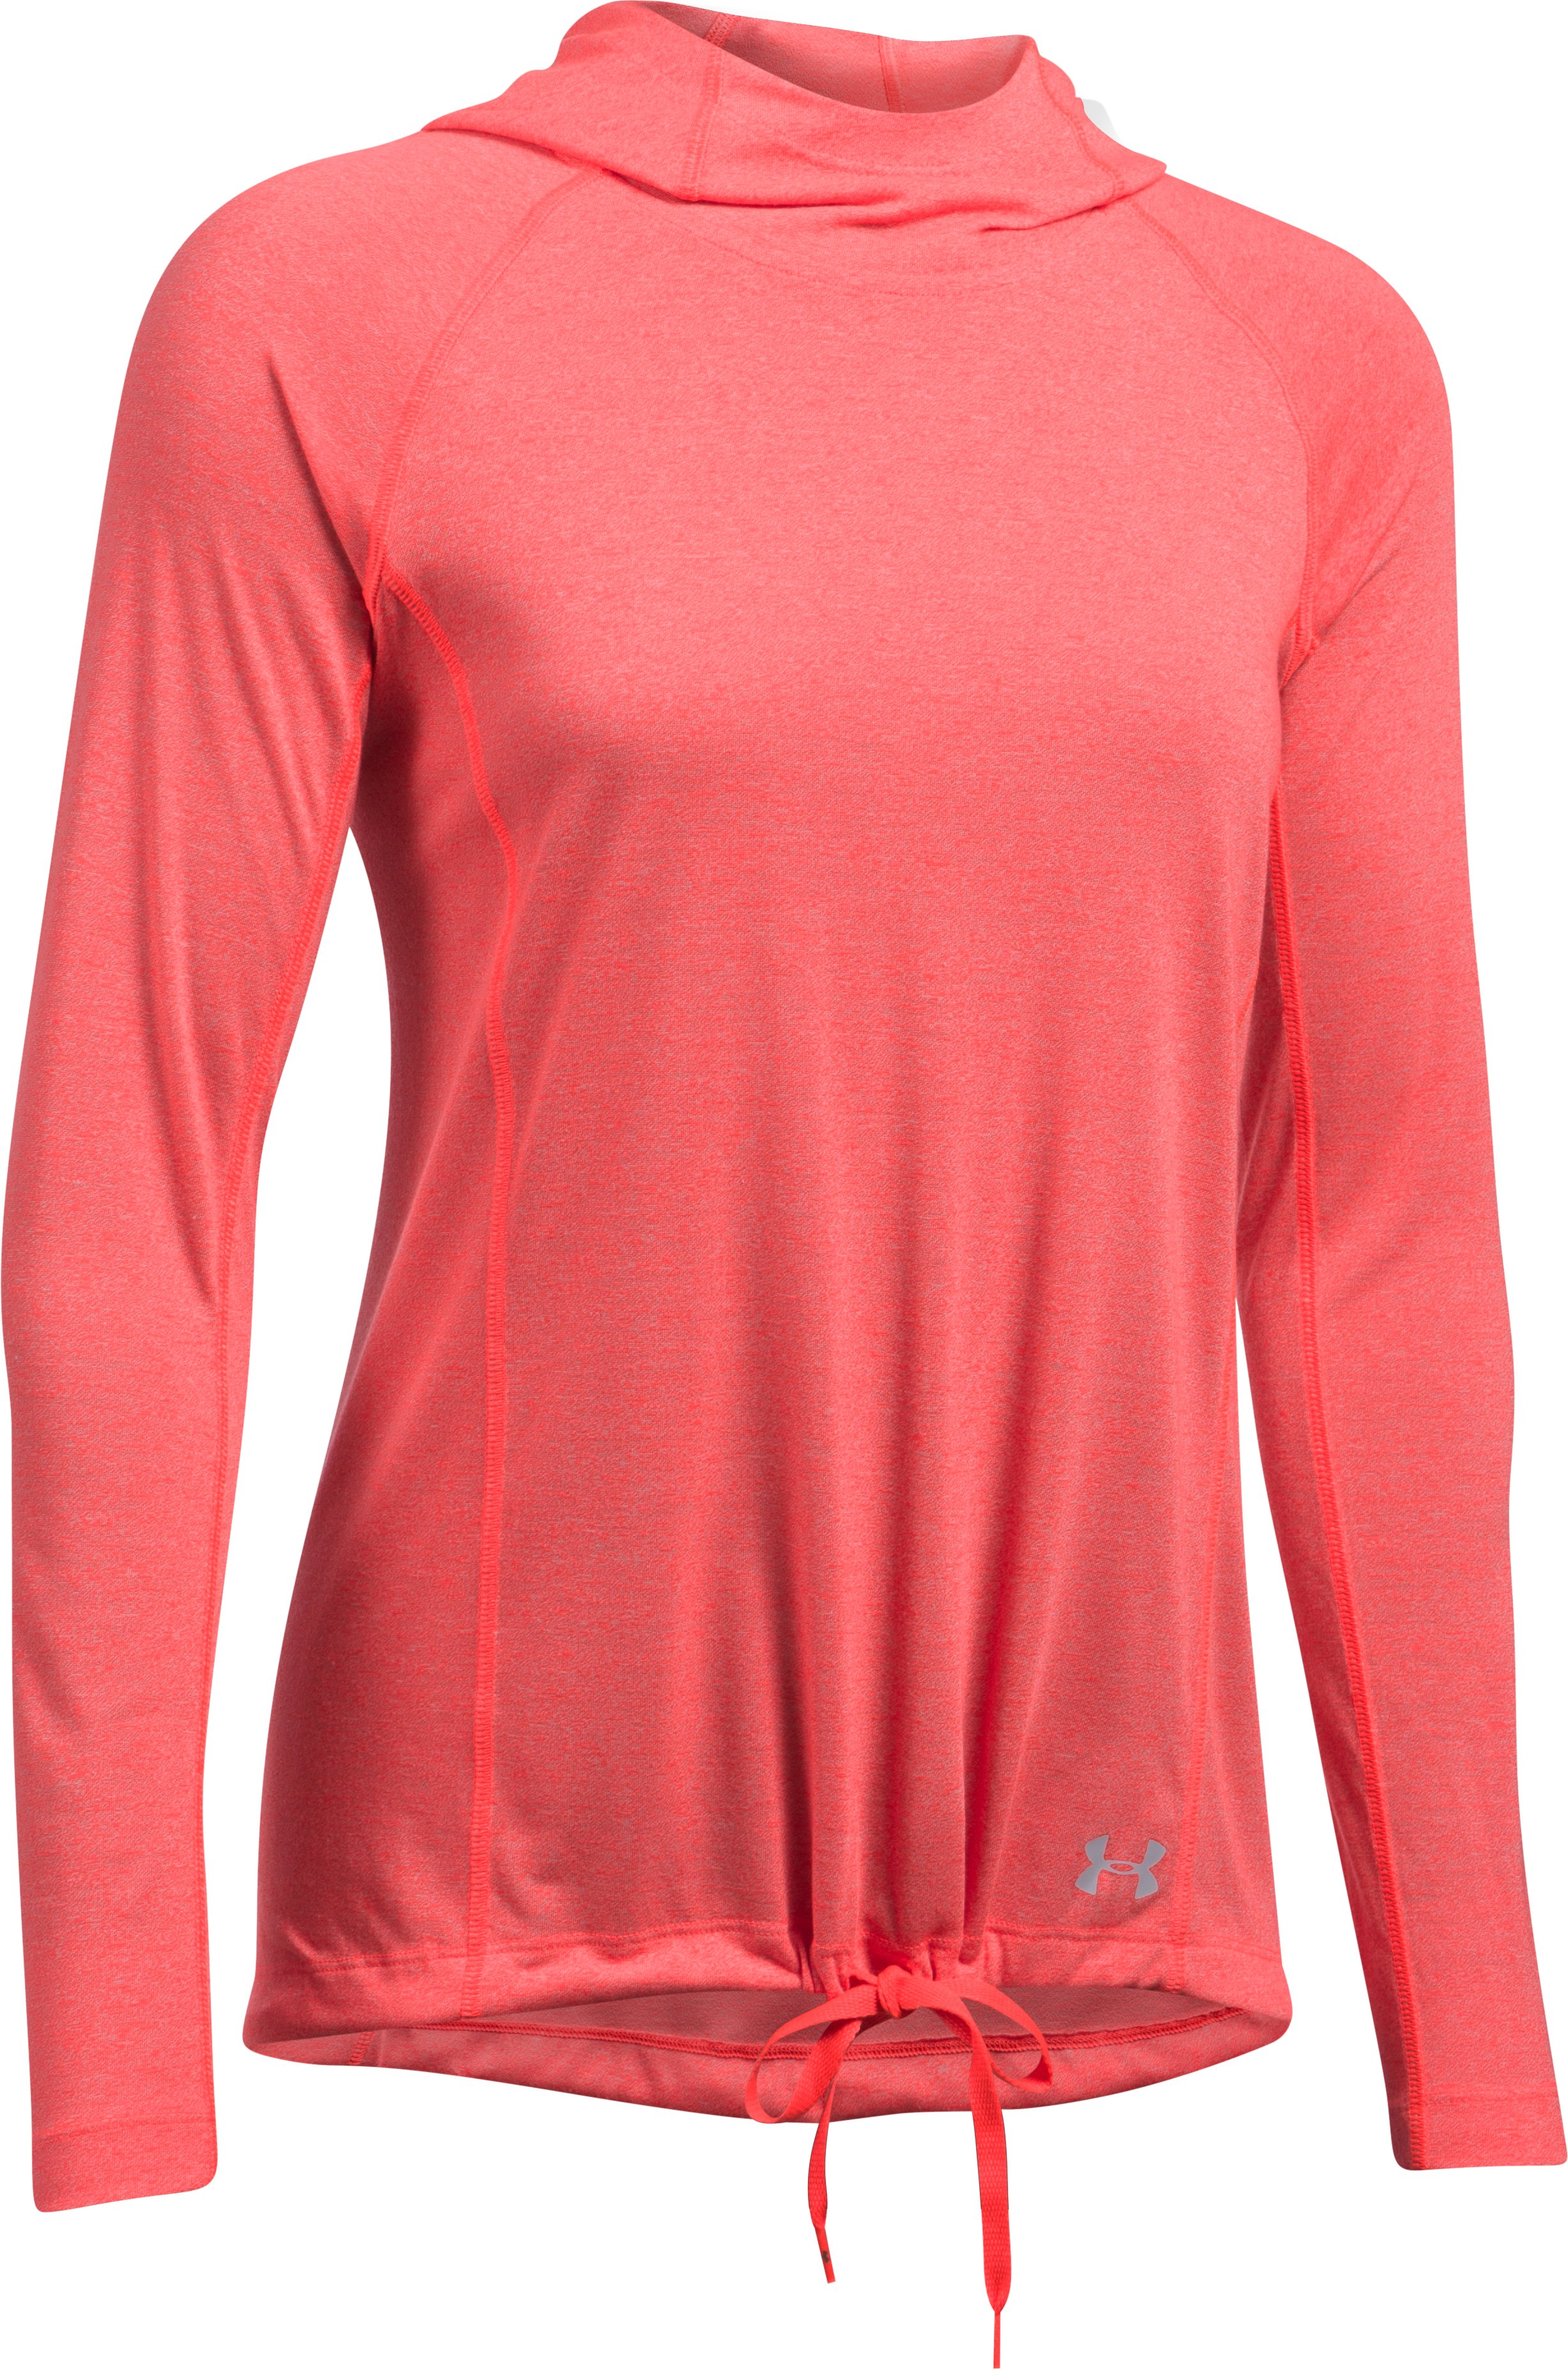 Women's UA Threadborne Train Twist Hoodie, MARATHON RED, undefined